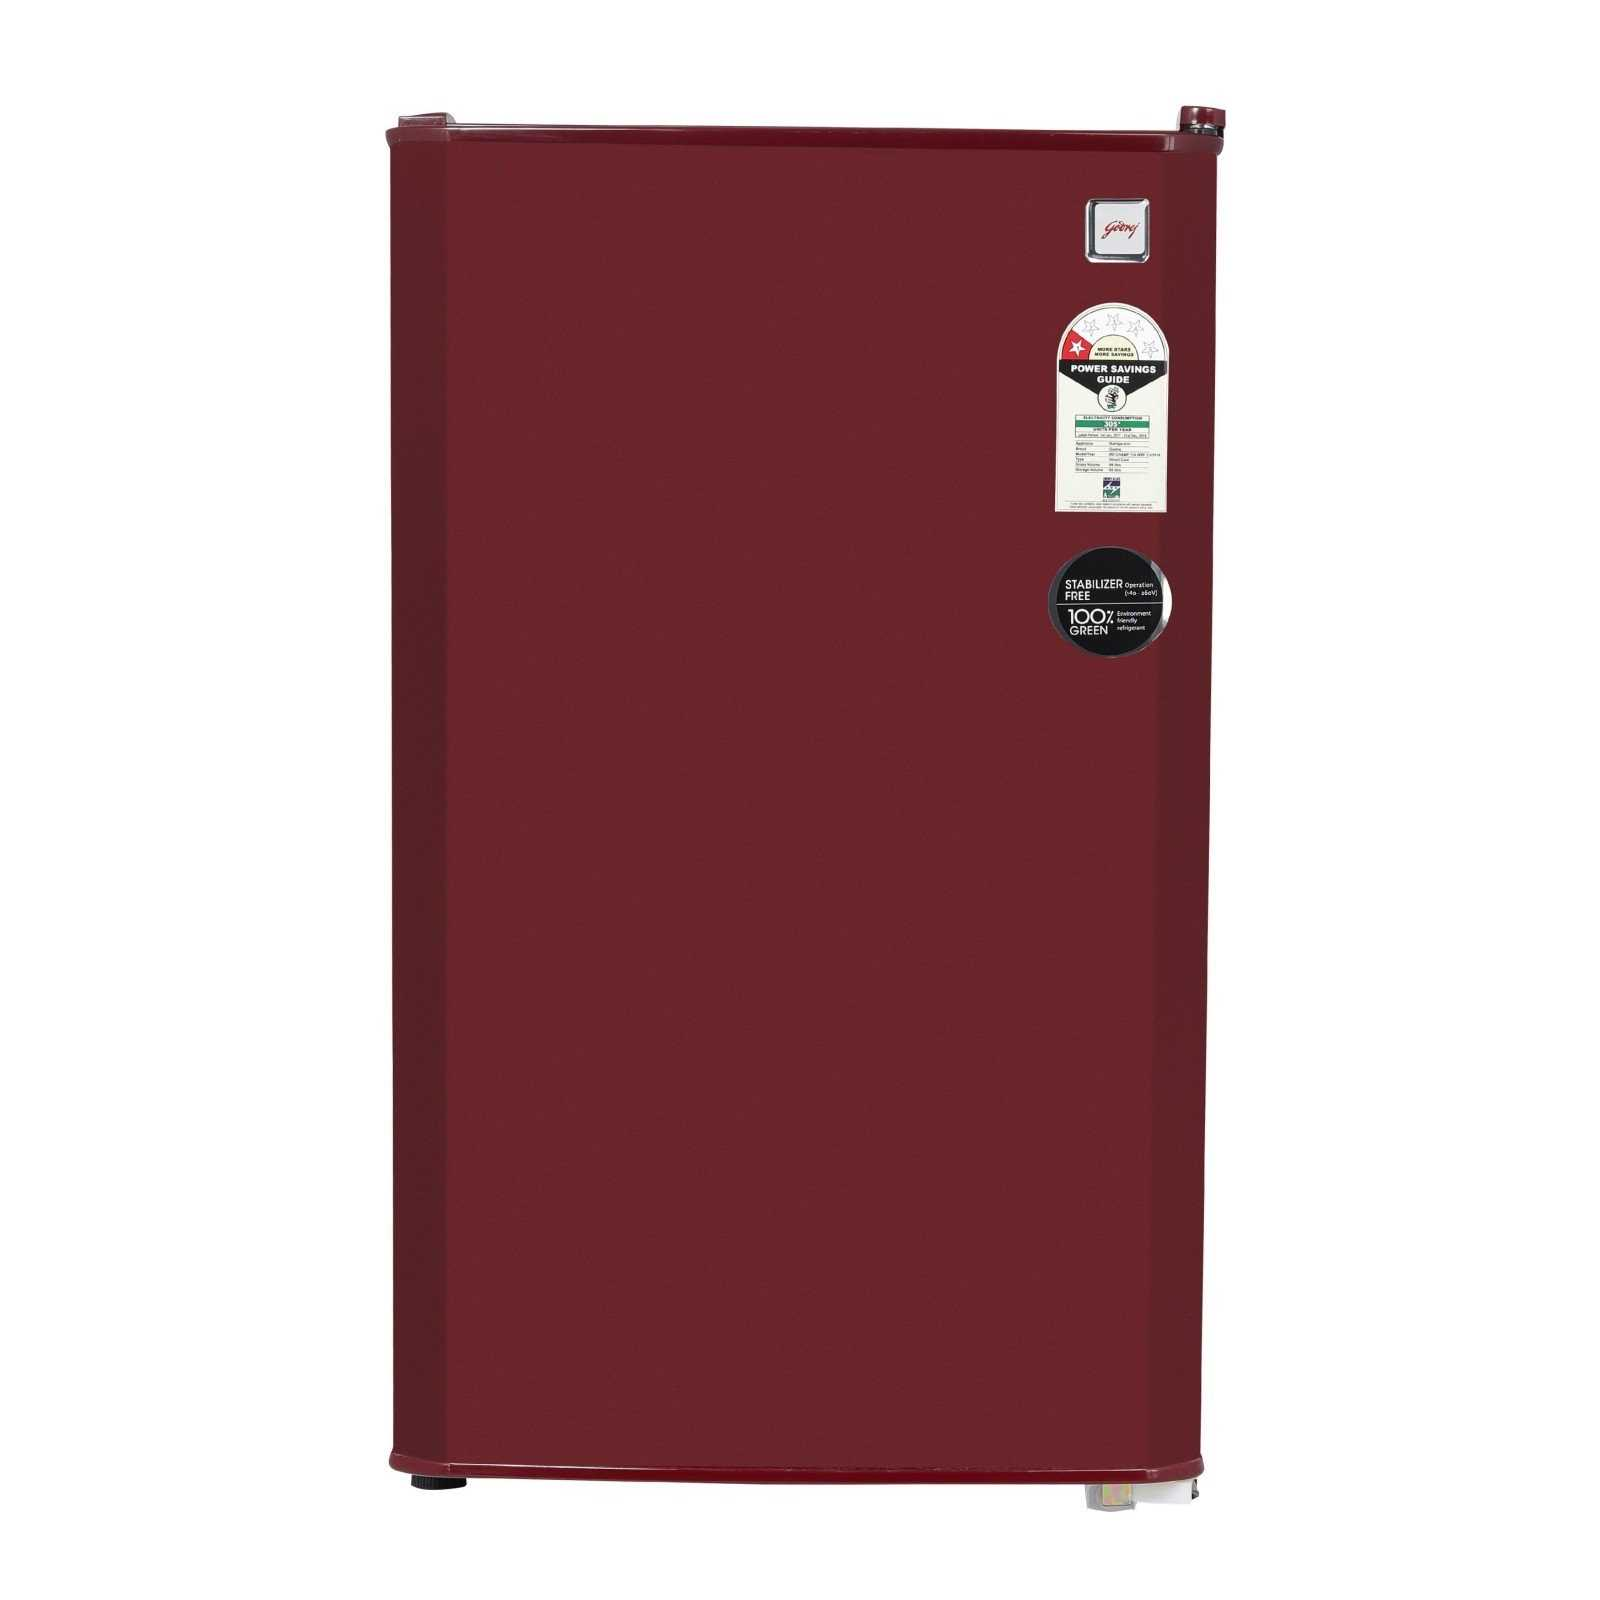 Godrej RD CHAMP 114 WRF 1.2 WIN 99 Liter 1 Star Direct Cool Single Door Refrigerator